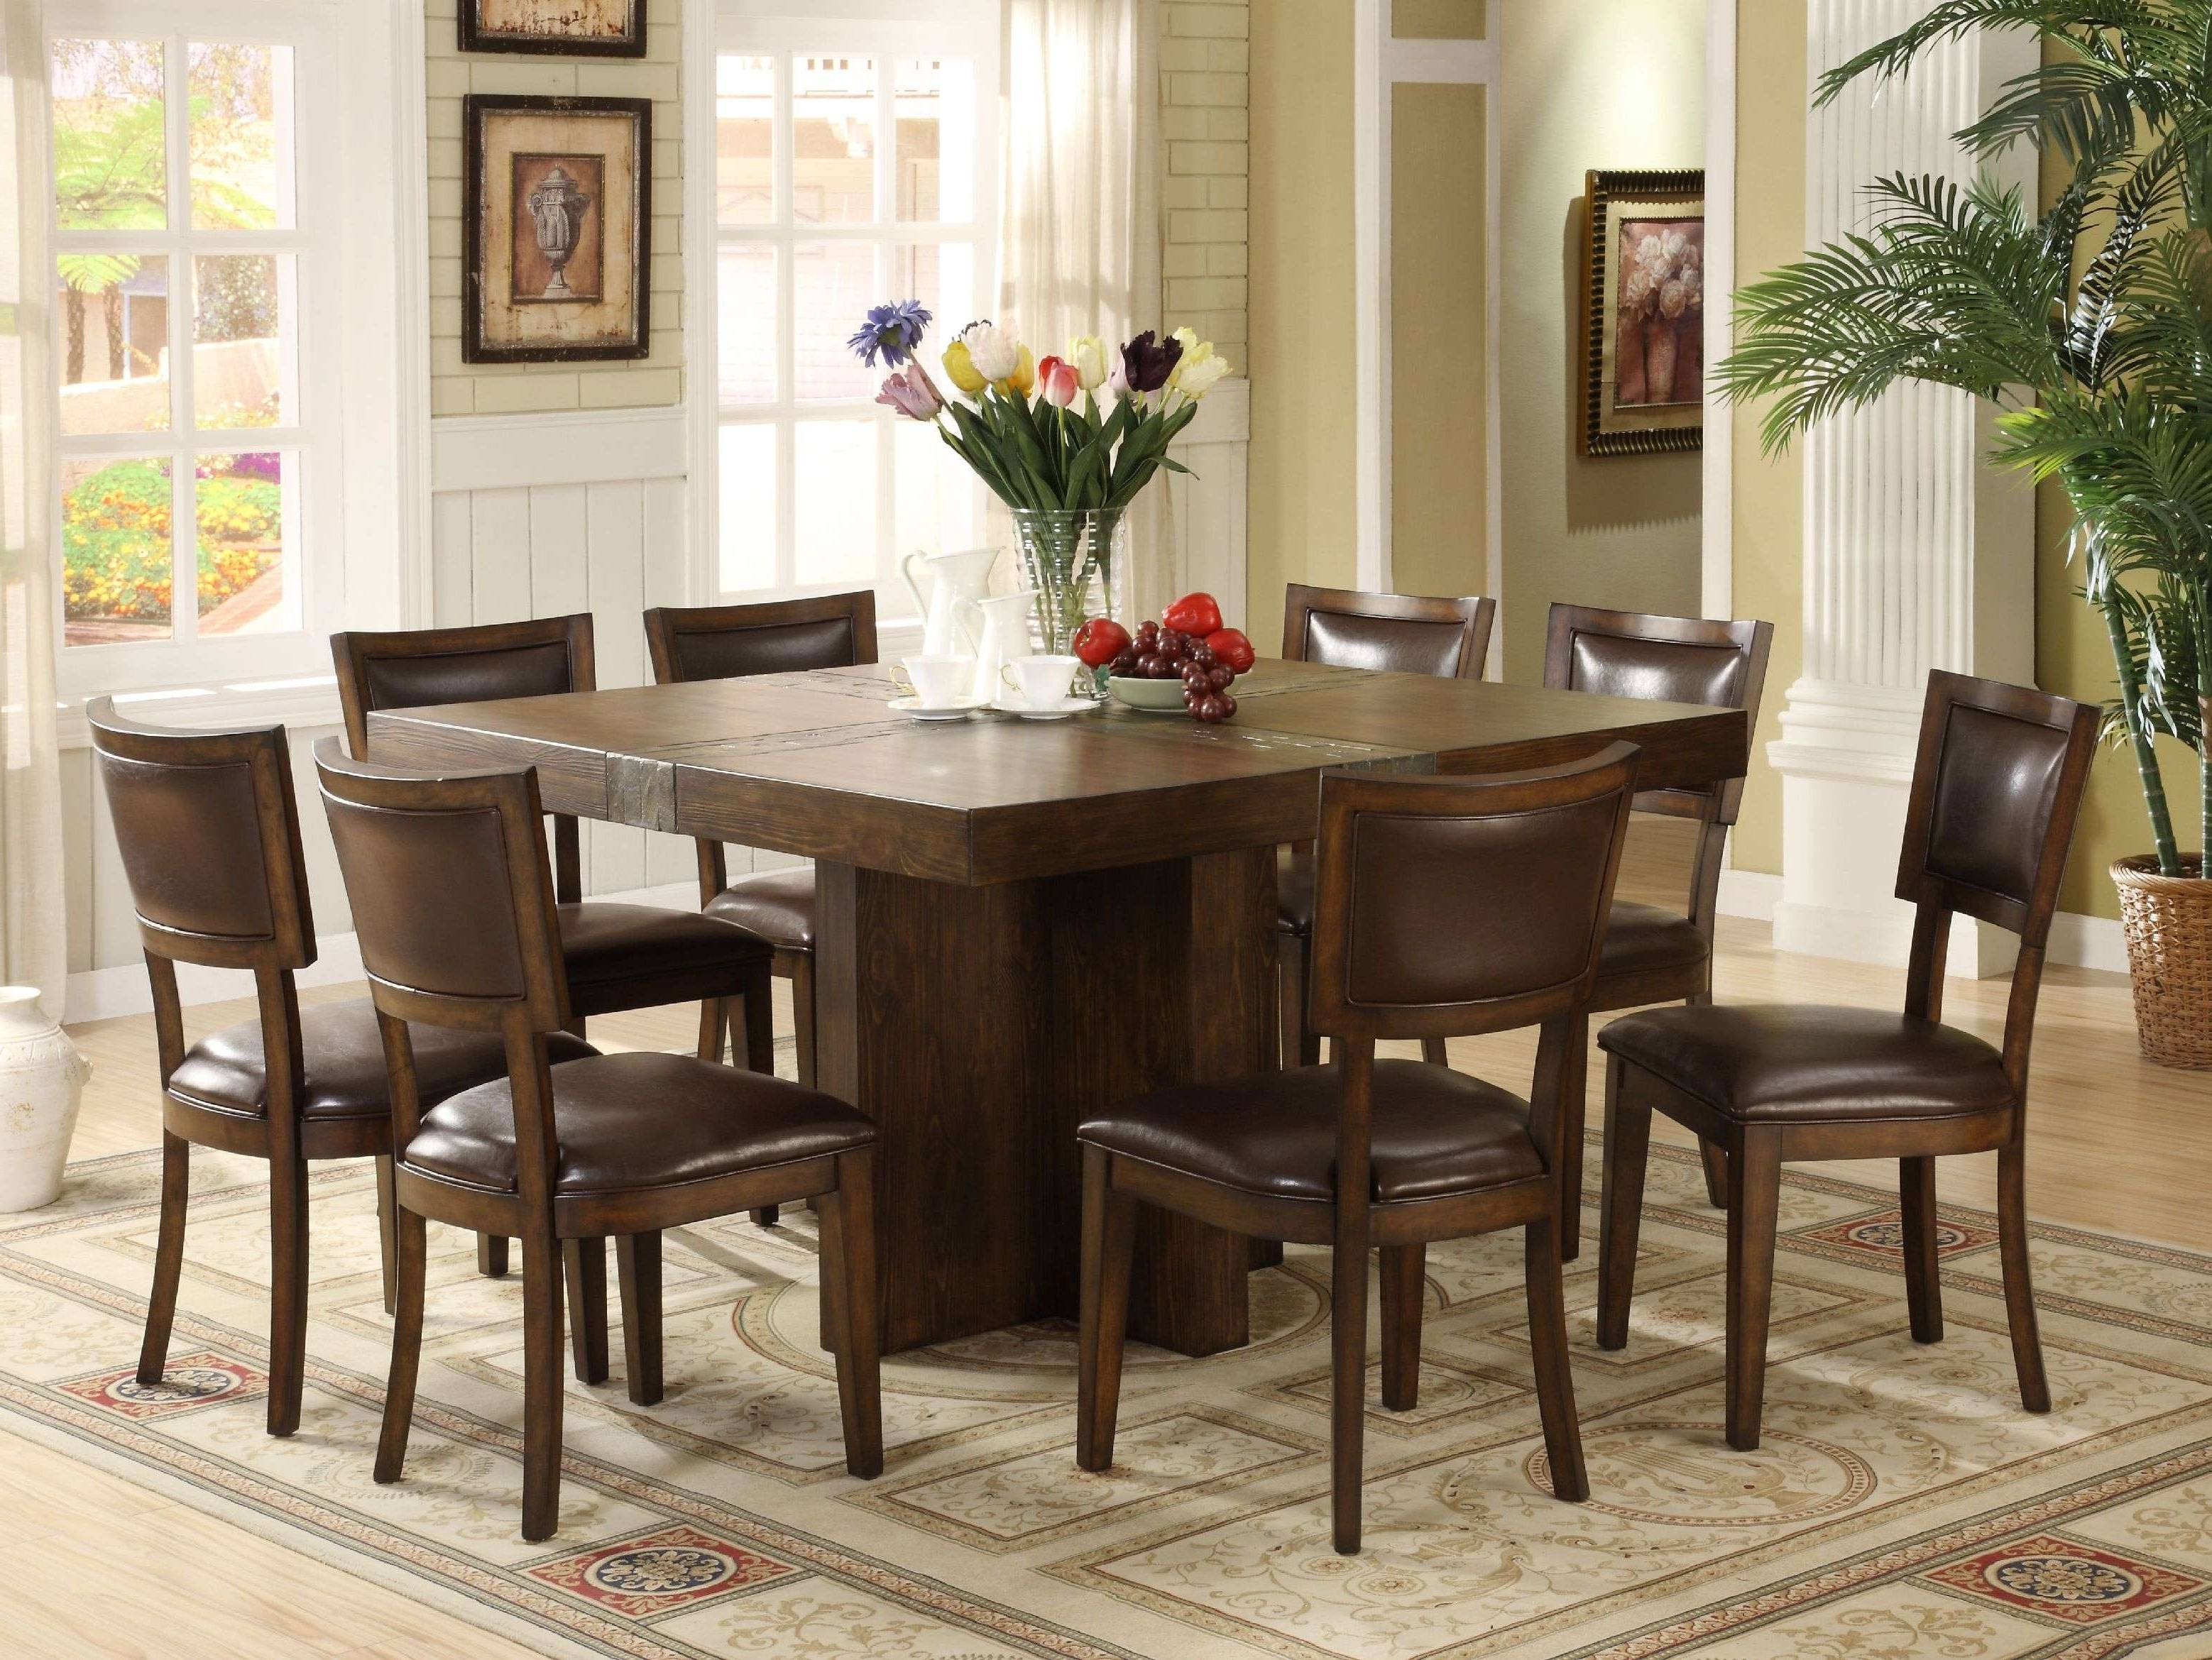 Dining Tables With 8 Chairs regarding Well known Solid Oak Dining Room Table And 8 Chairs New Ashley Counter Height